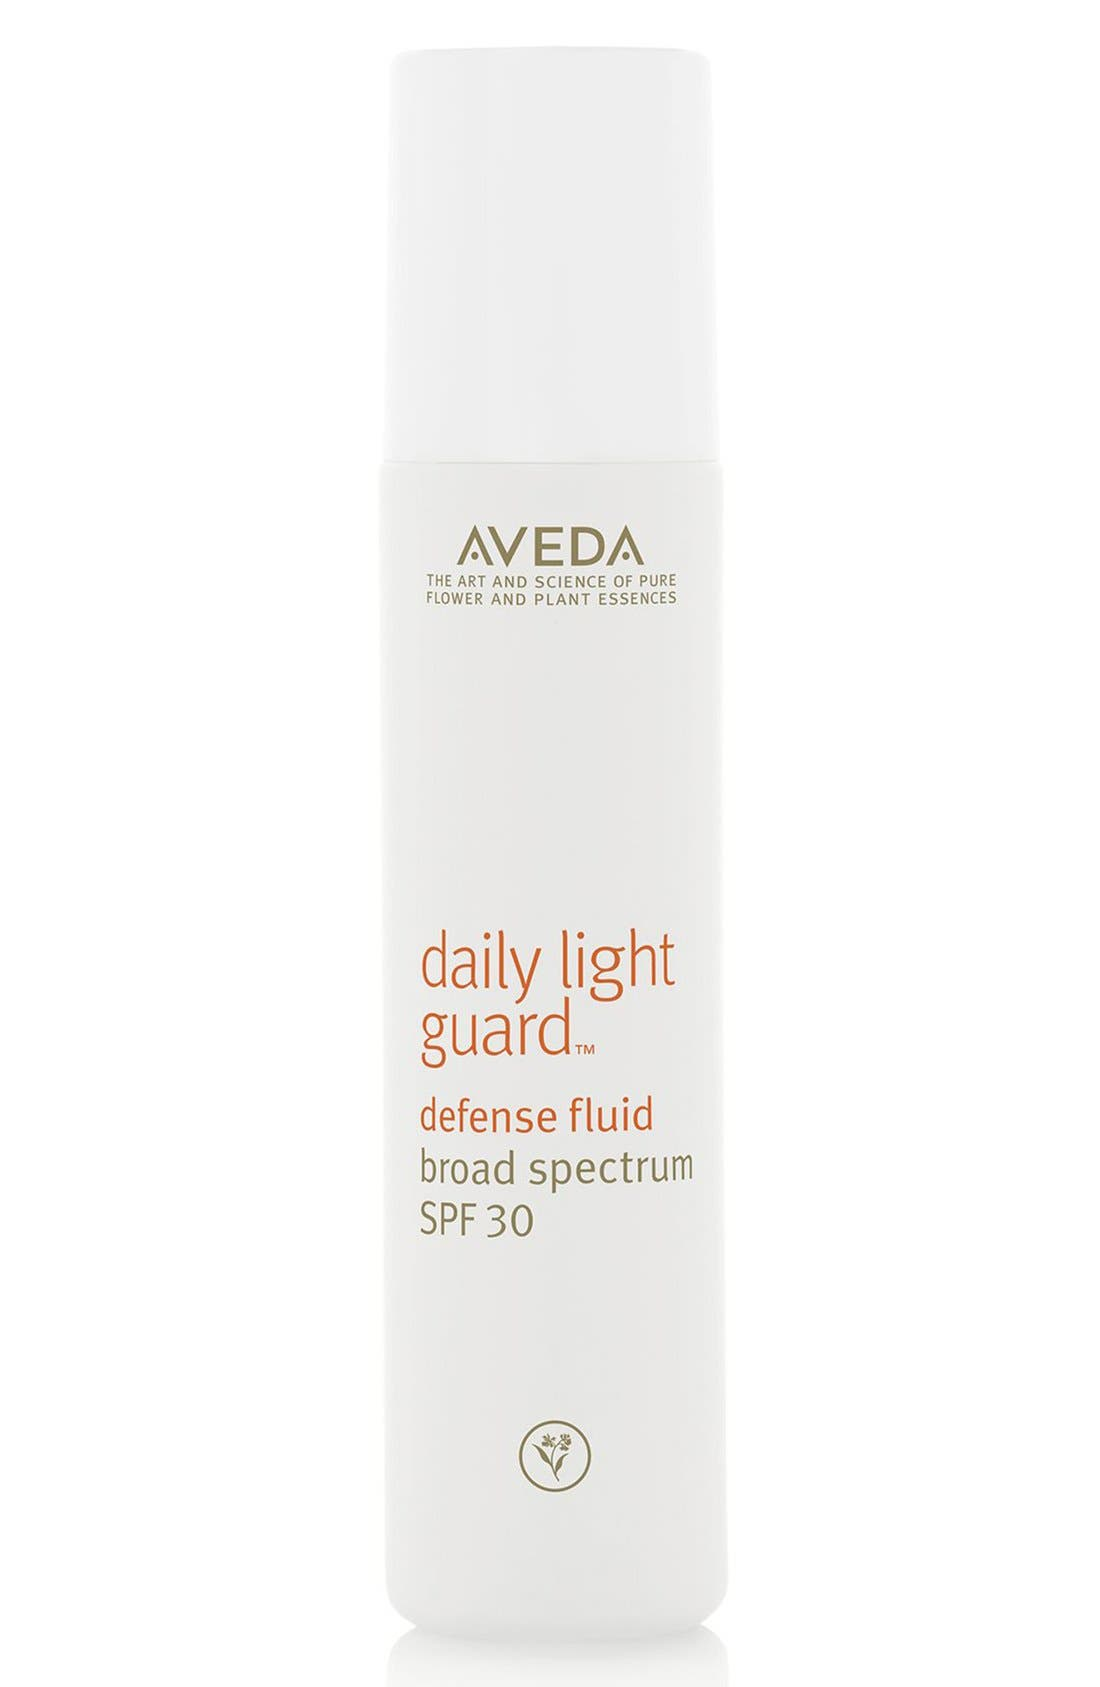 Aveda 'daily light guard™' Defense Fluid Broad Spectrum SPF 30